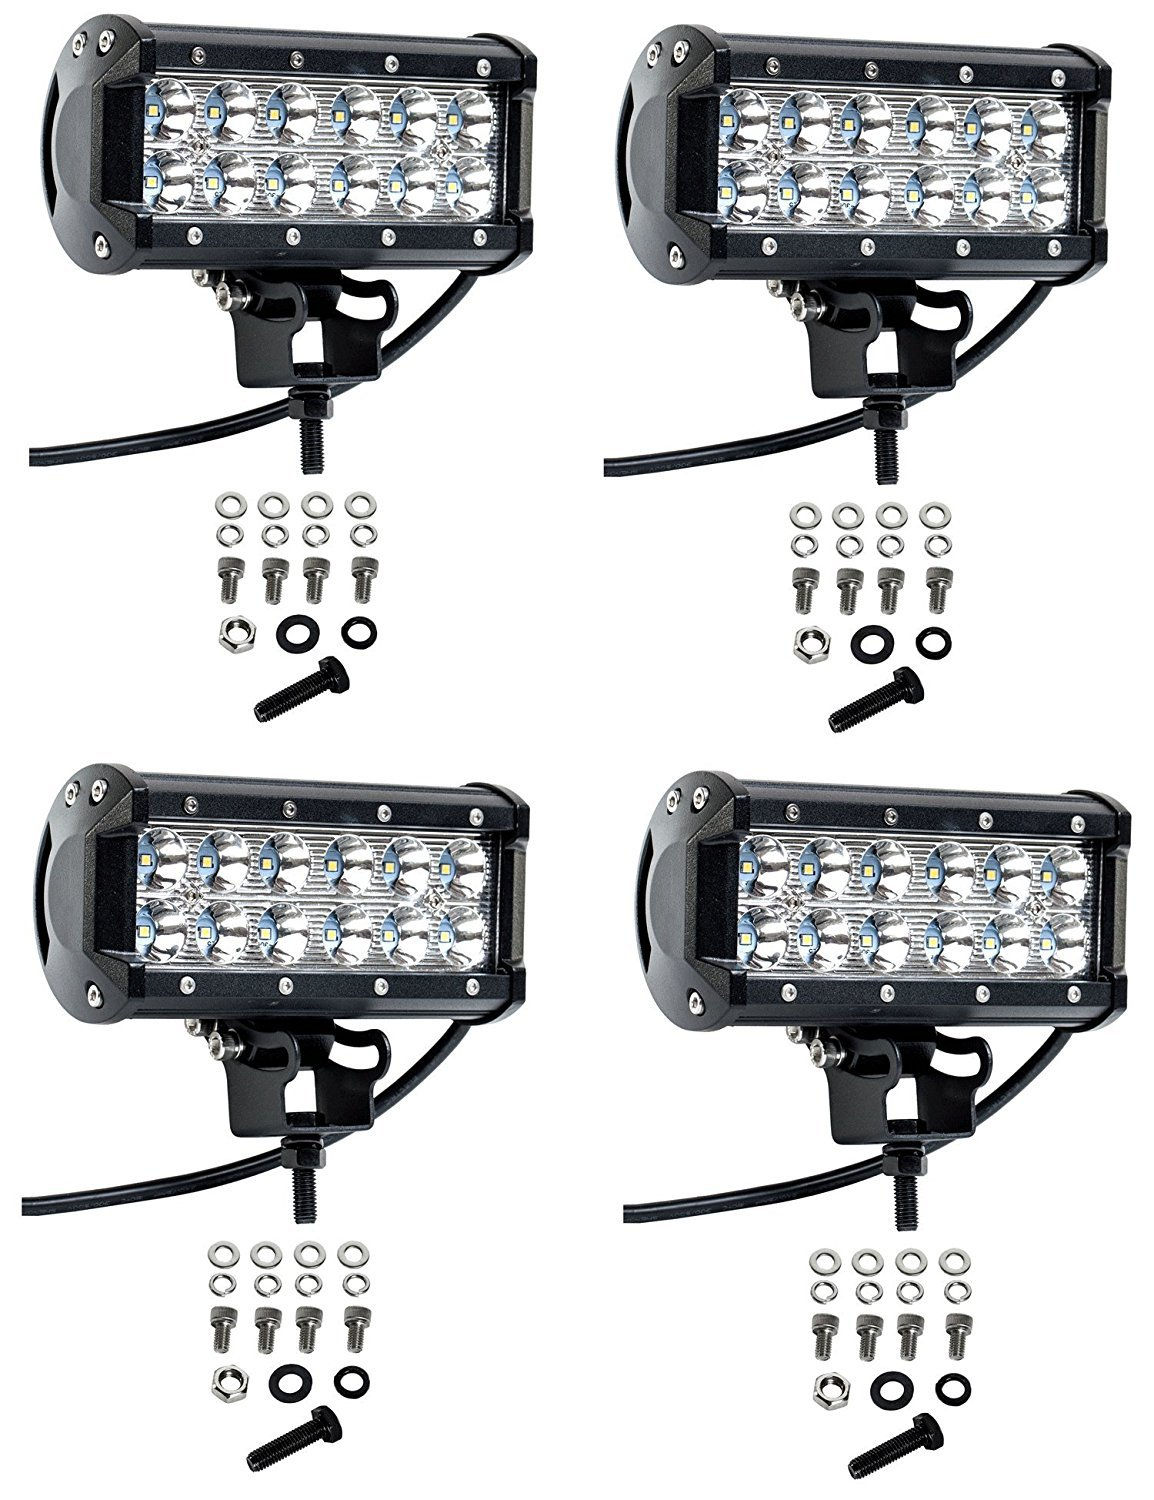 Cutequeen 4 X 36w 3600 Lumens Cree LED Spot Light for Off-road Rv Atv SUV Boat 4x4 Jeep Lamp Tractor Marine Off-road Lighting (pack of 4) by Cutequeen